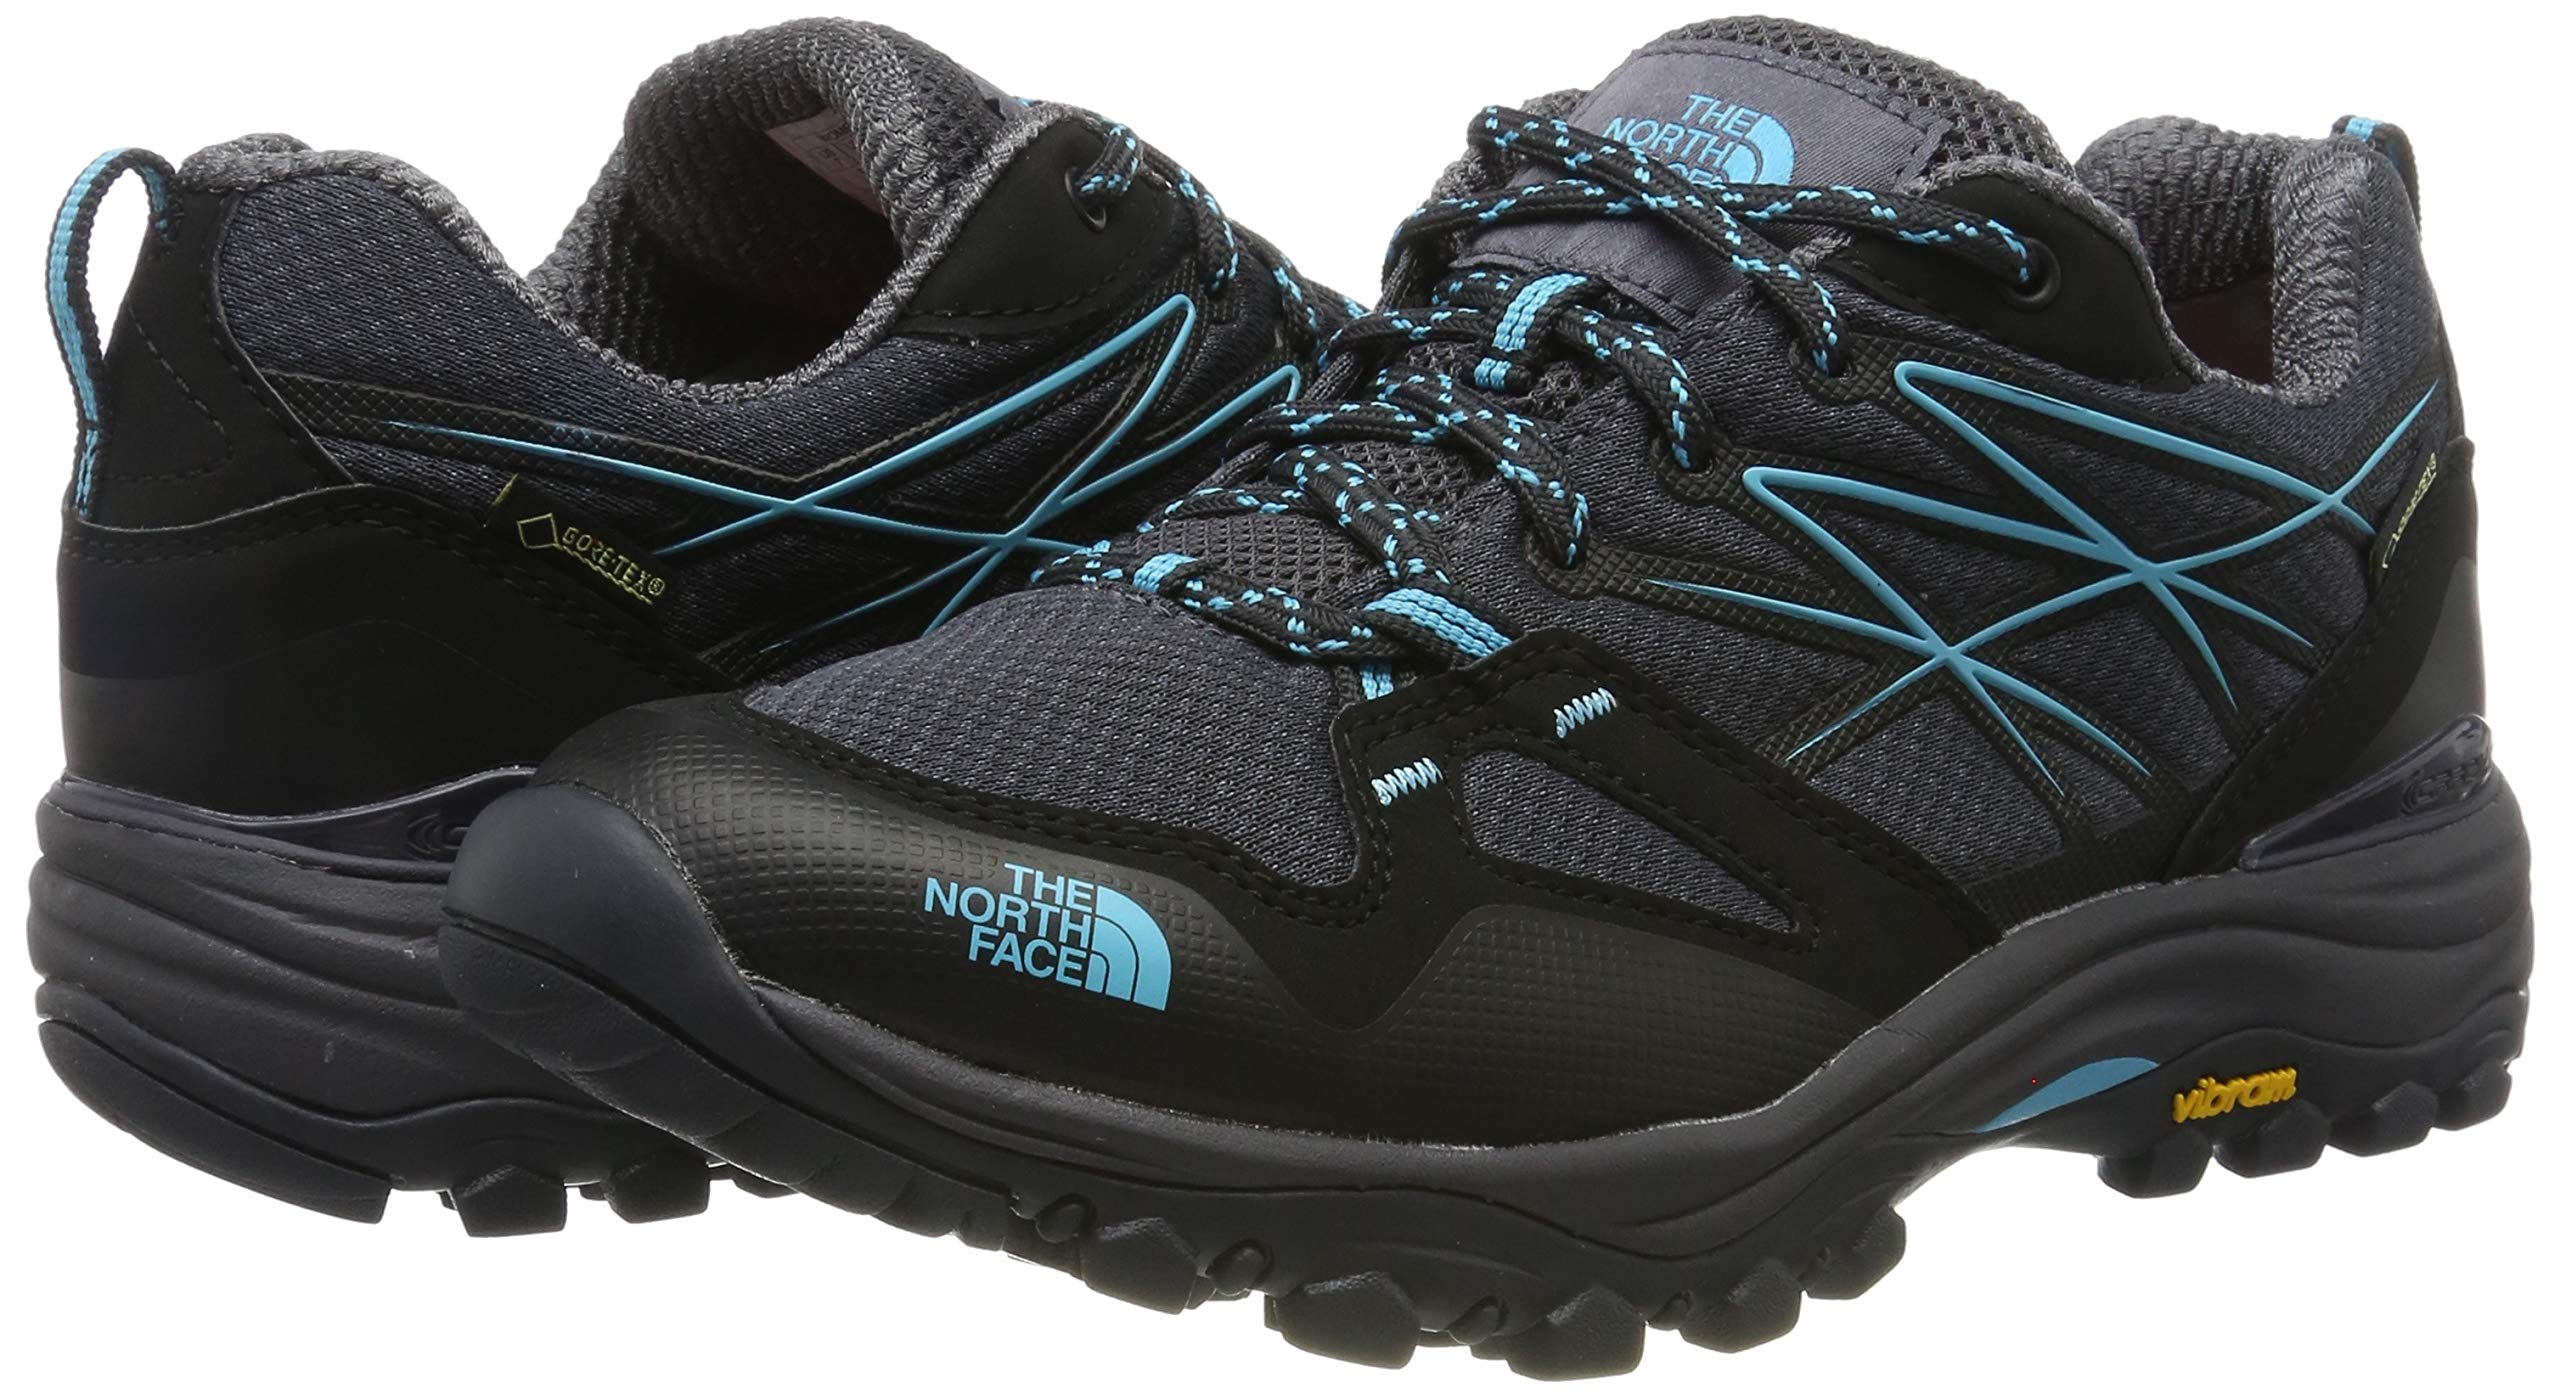 81yOVffGKCL - THE NORTH FACE Women's W Hedgehog Fastpack GTX (EU) Low Rise Hiking Boots